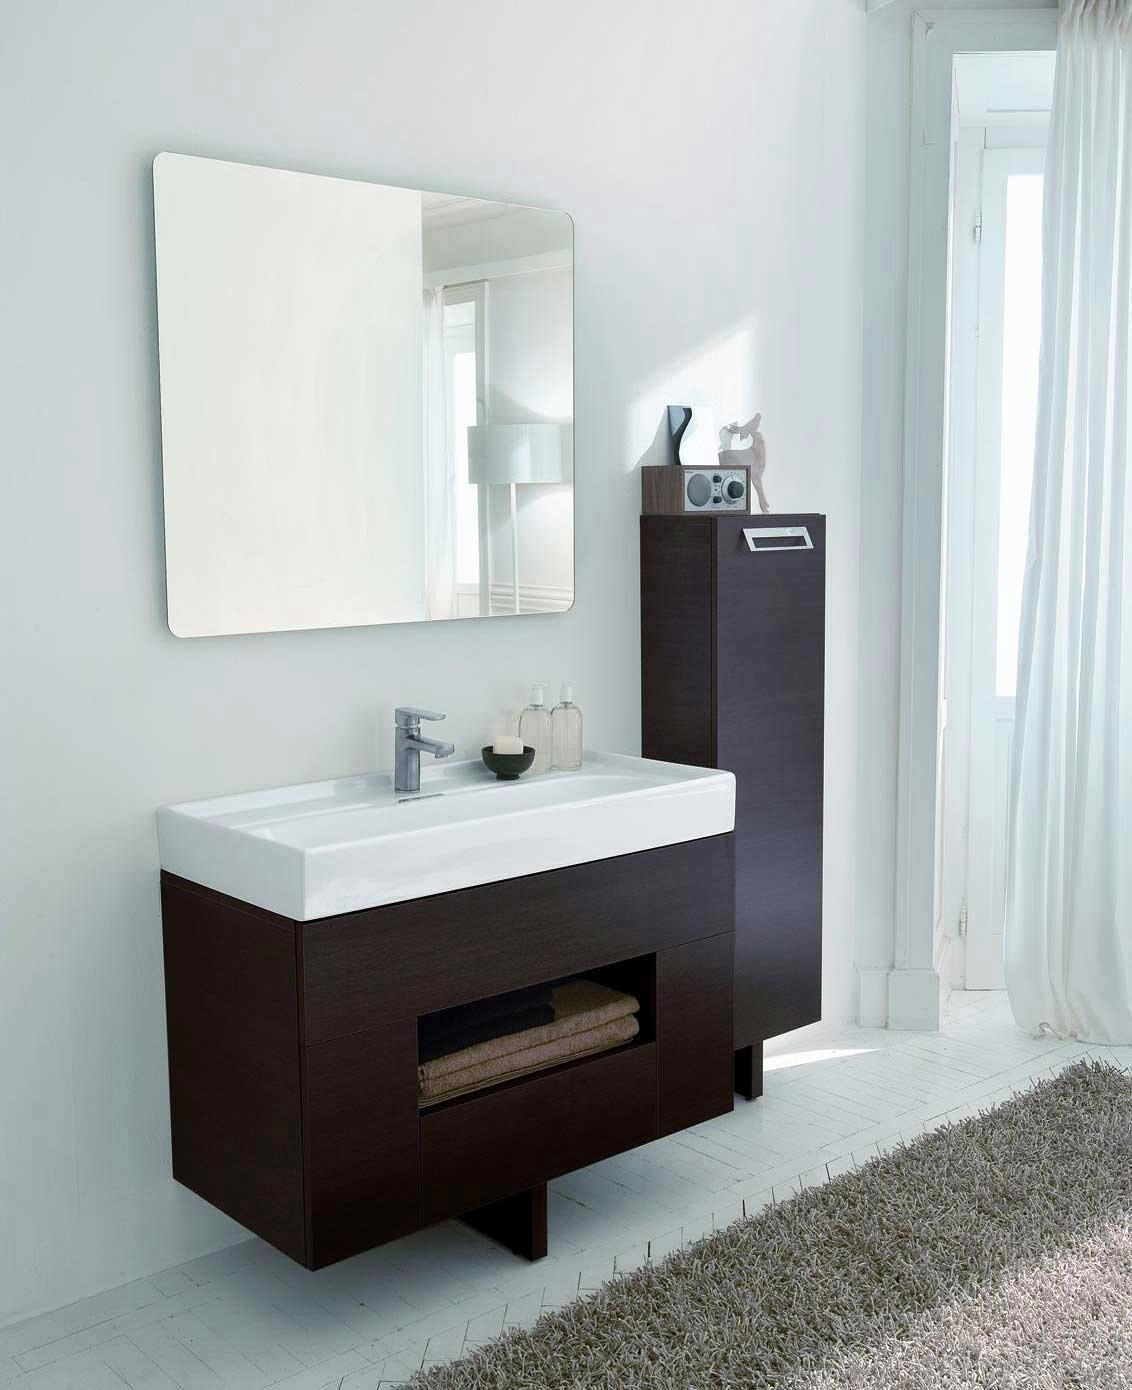 LaToscana Open Bathroom Vanity Cabinet LaToscana Open Bathroom Vanity